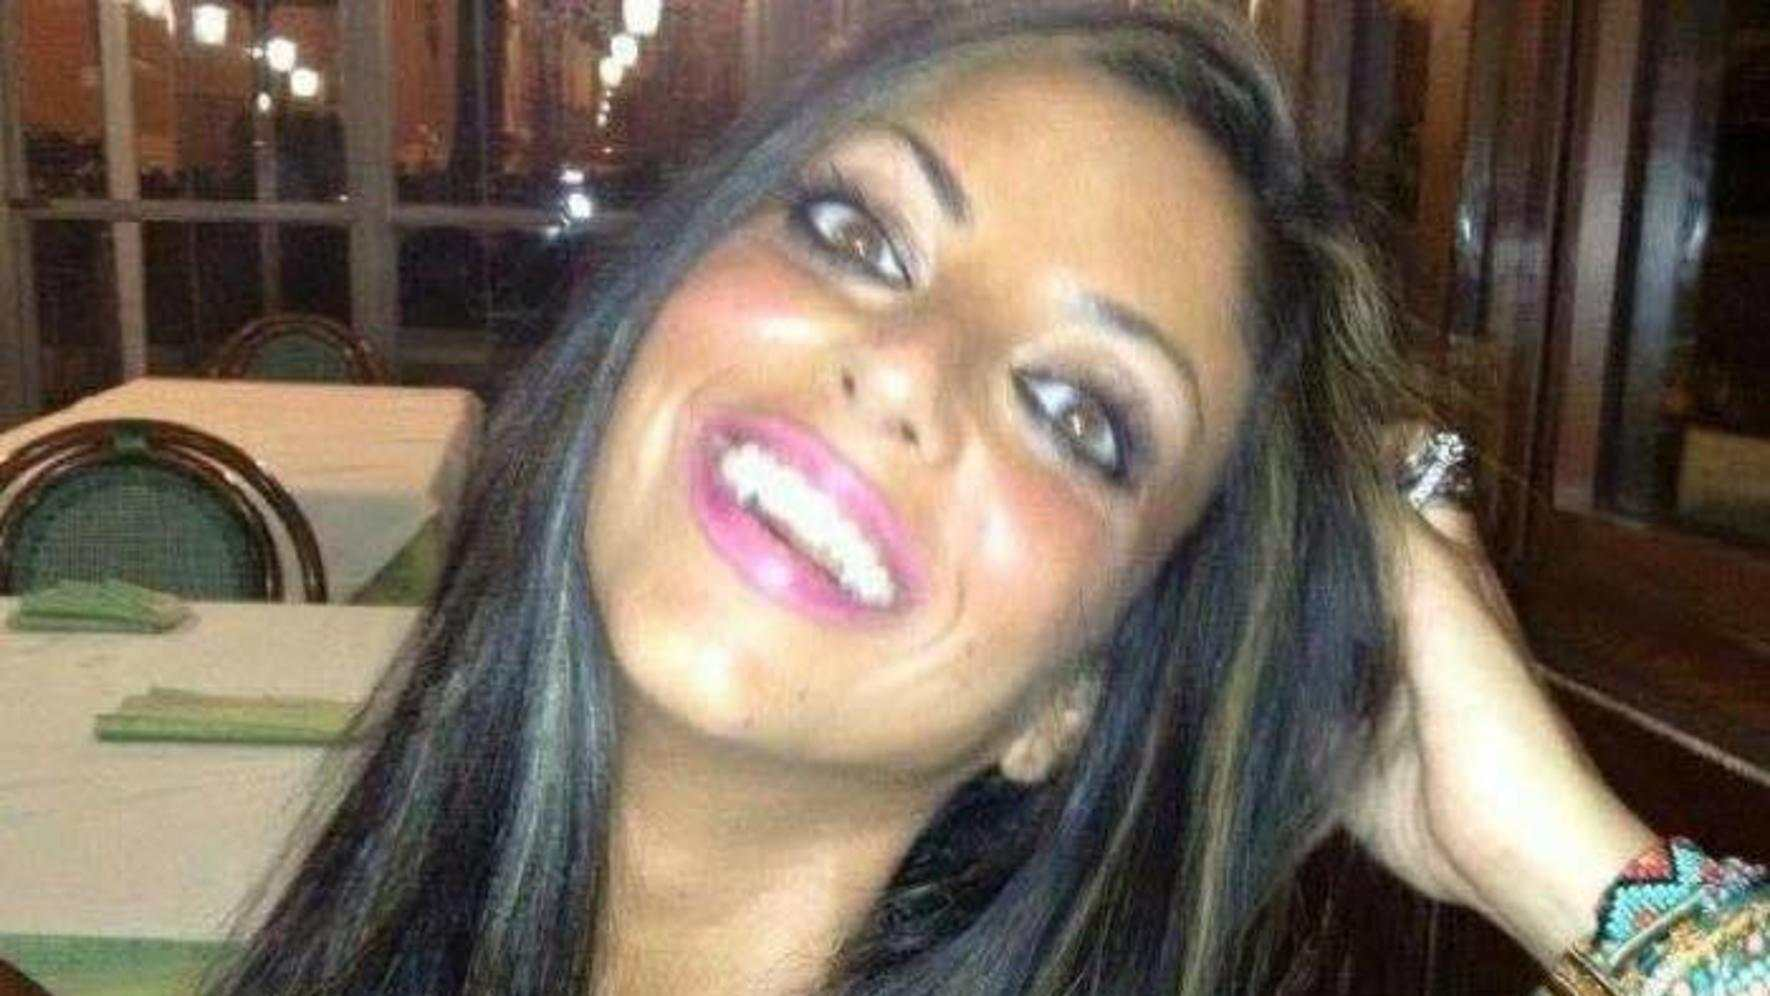 Tiziana Cantone Video auf Facebook Selbstmord tot